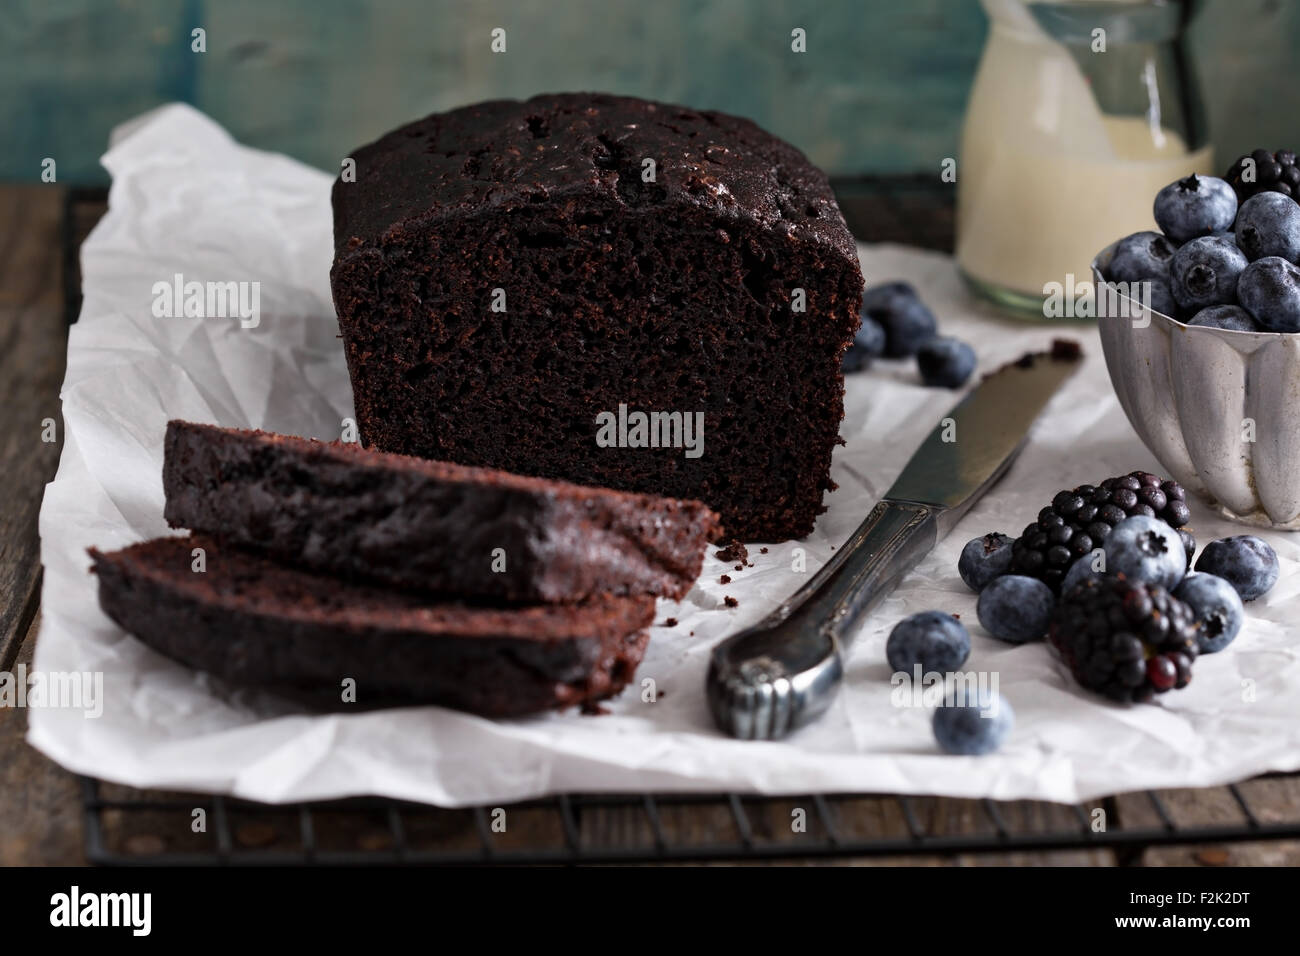 Chocolate loaf cake sliced ready to be decorated - Stock Image